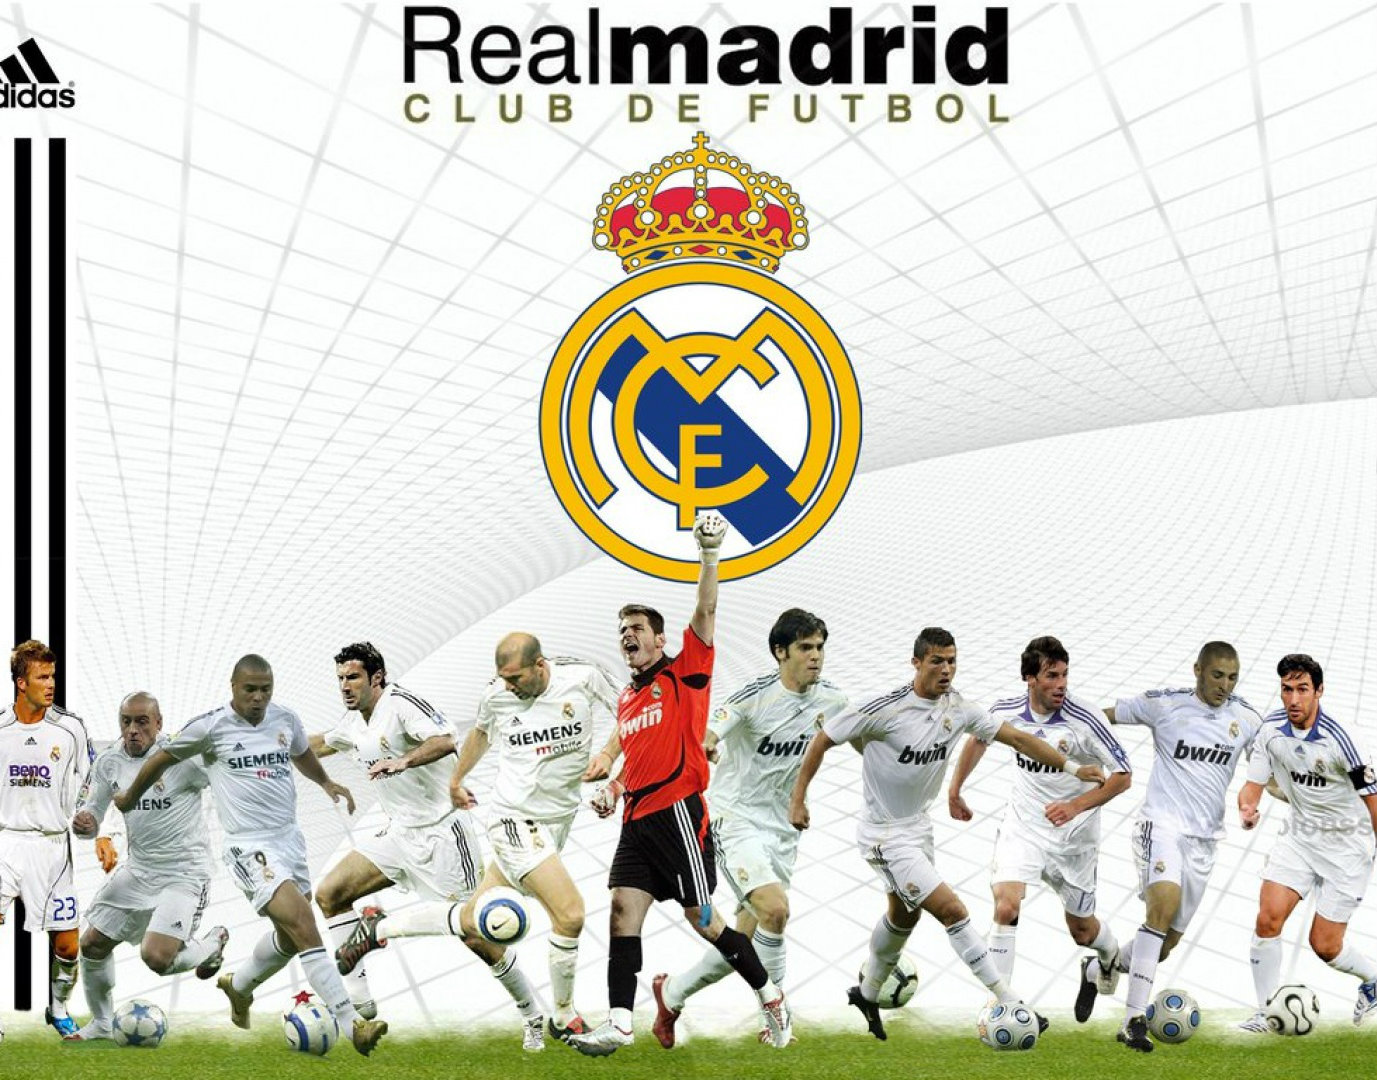 real madrid club de futbol case study analysis Check out our top free essays on case study of real madrid to help you write your own essay real madrid club de futbol write-ups hengwei zhang three drivers: real madrid case analysis 1 what is the real madrid business model.